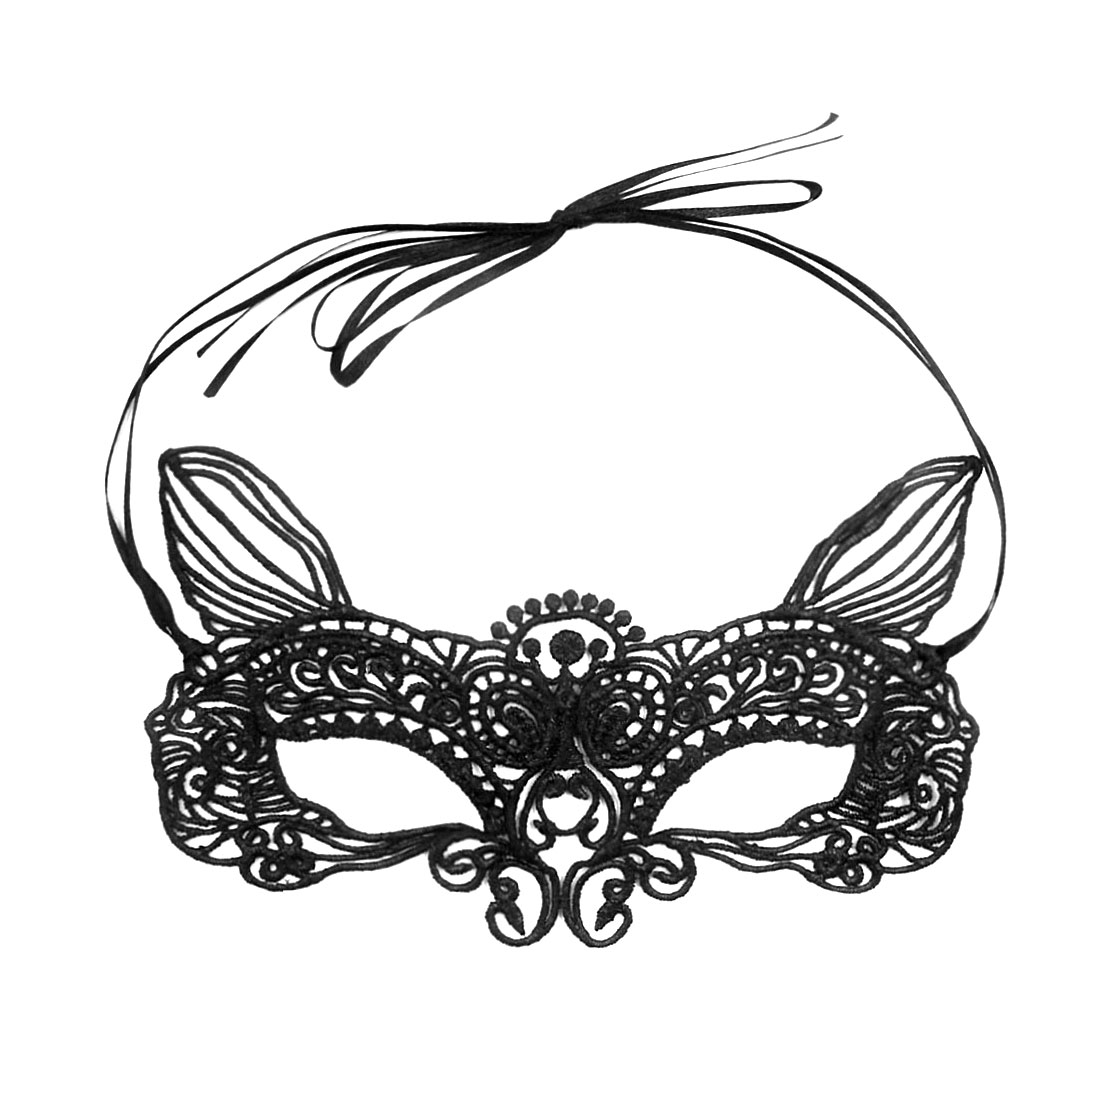 Women's Masquerade Crochet Self Tie Cat Ears Party Eye Mask Black